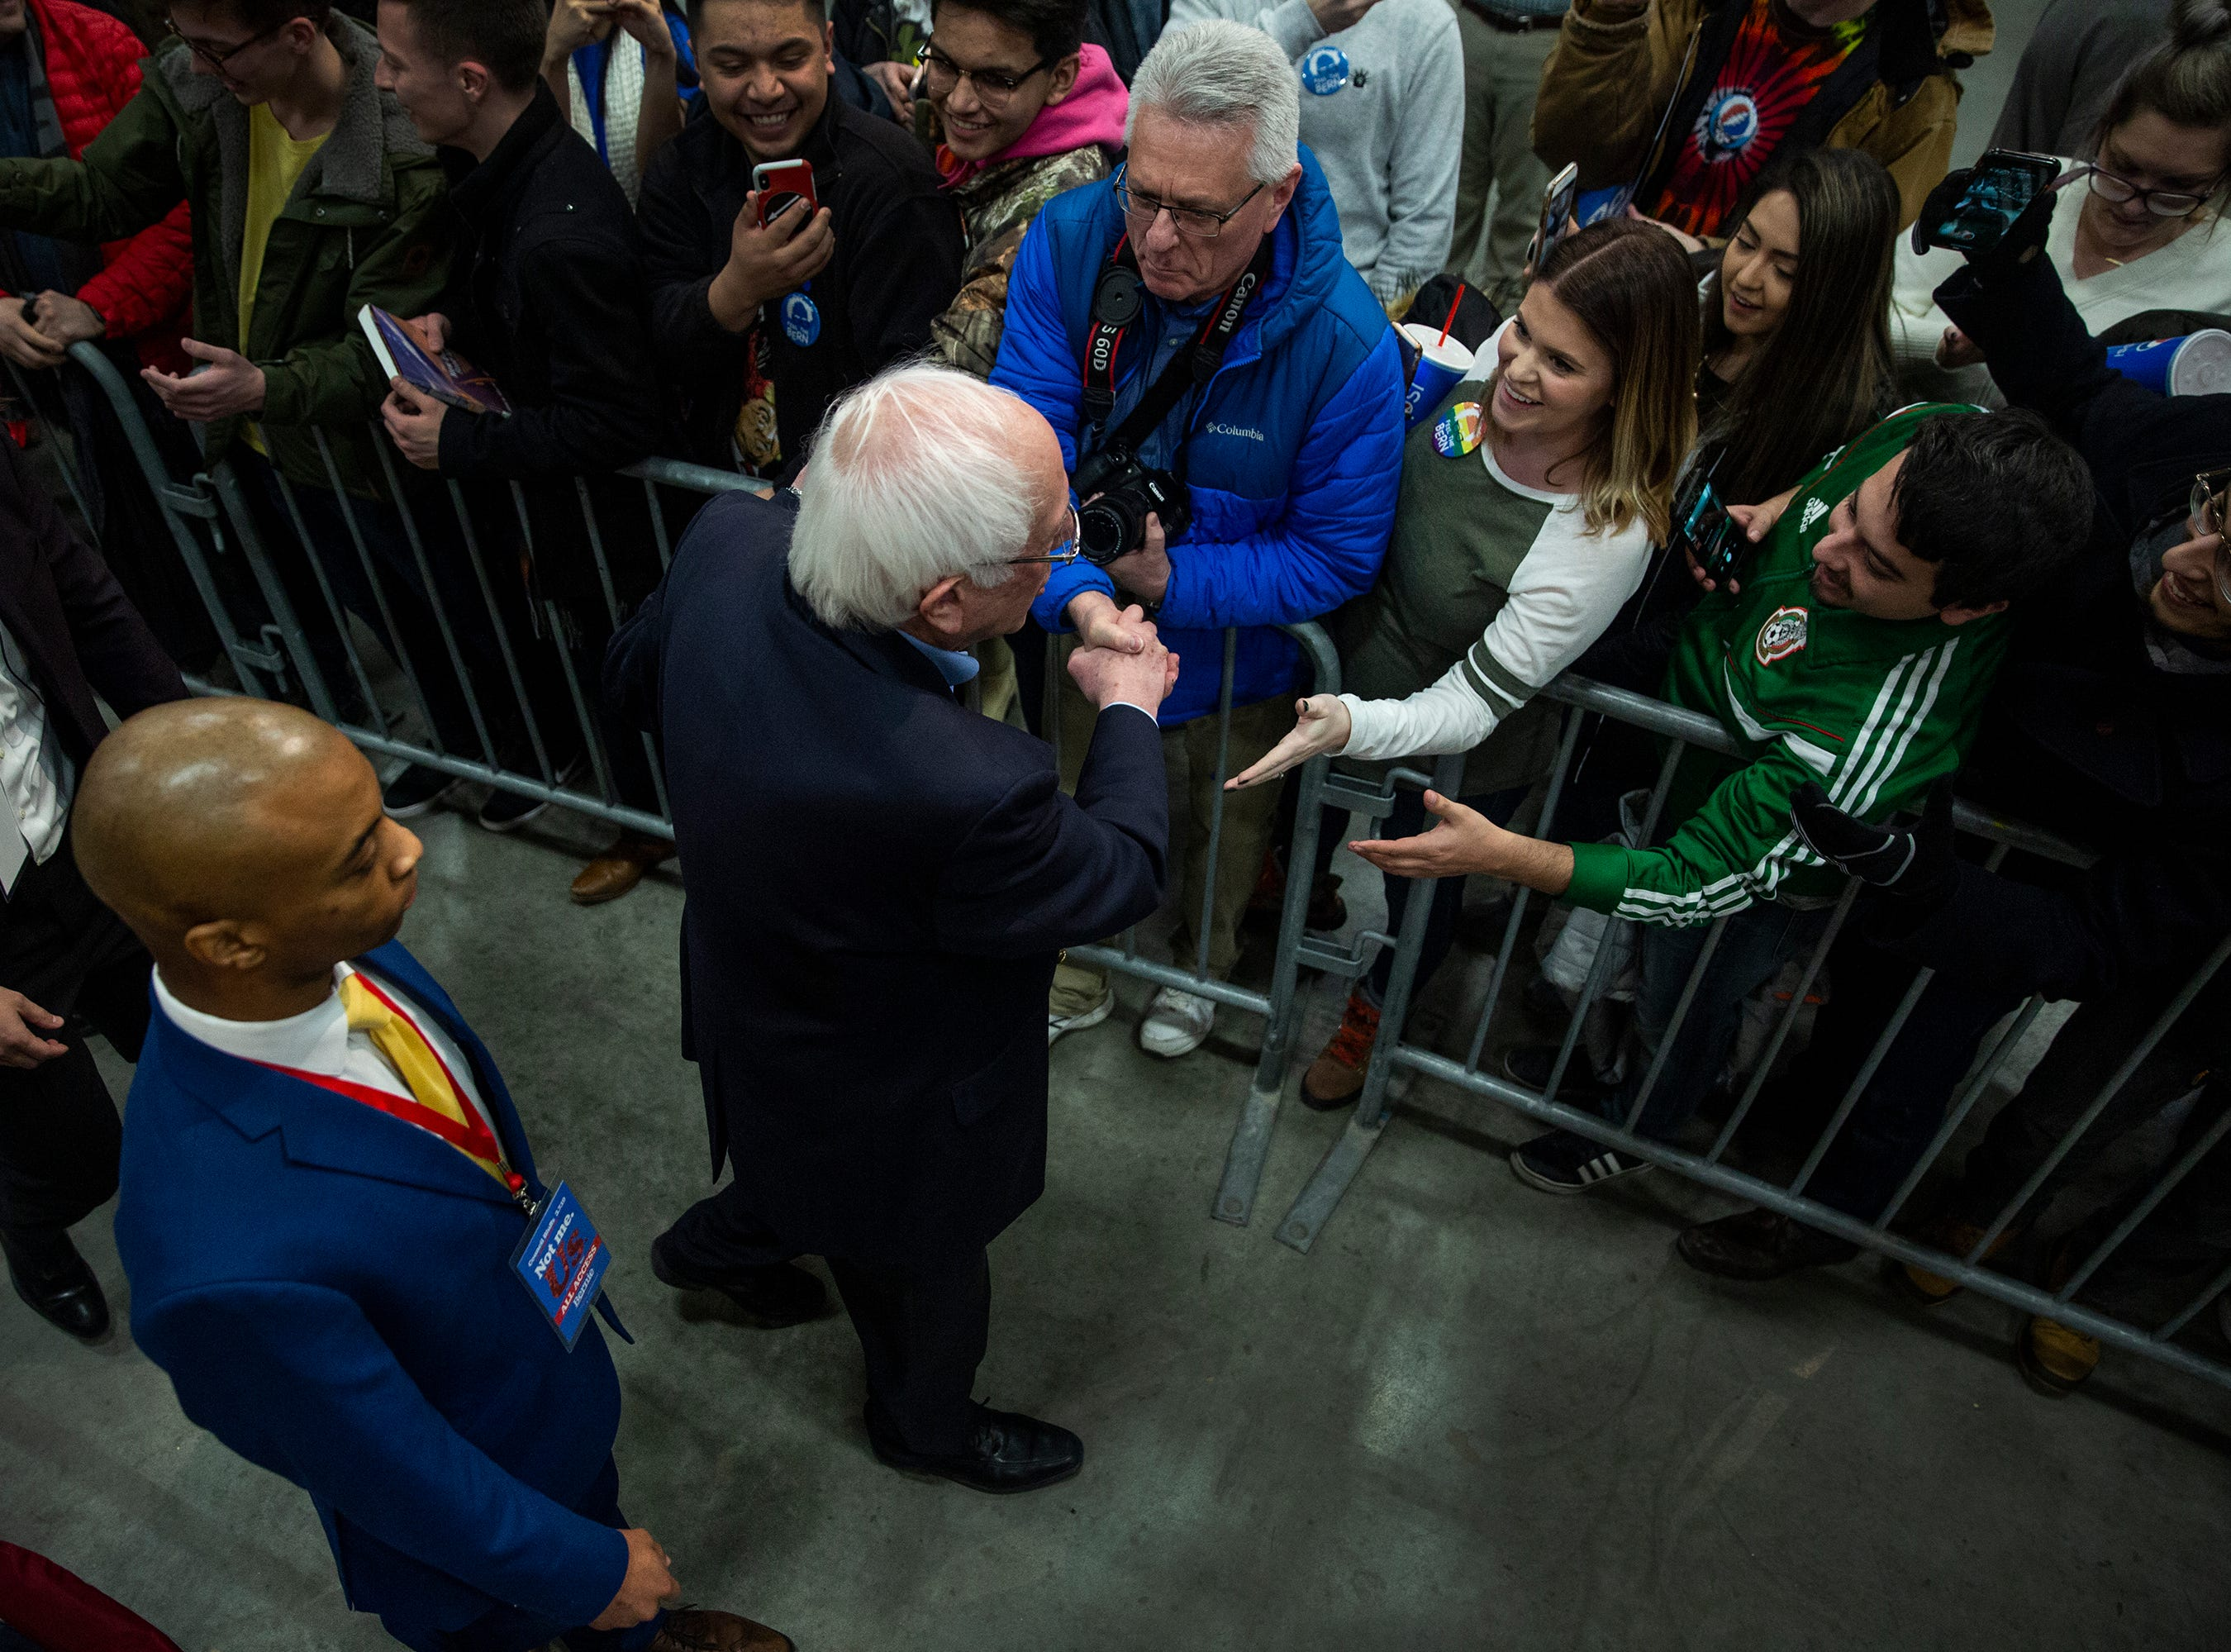 Sen. Bernie Sanders, I-VT, shakes hands with people in the crowd at the end of his first rally in Iowa after announcing he'll run for president for the second time, on Thursday, March 7, 2019, in Council Bluffs.